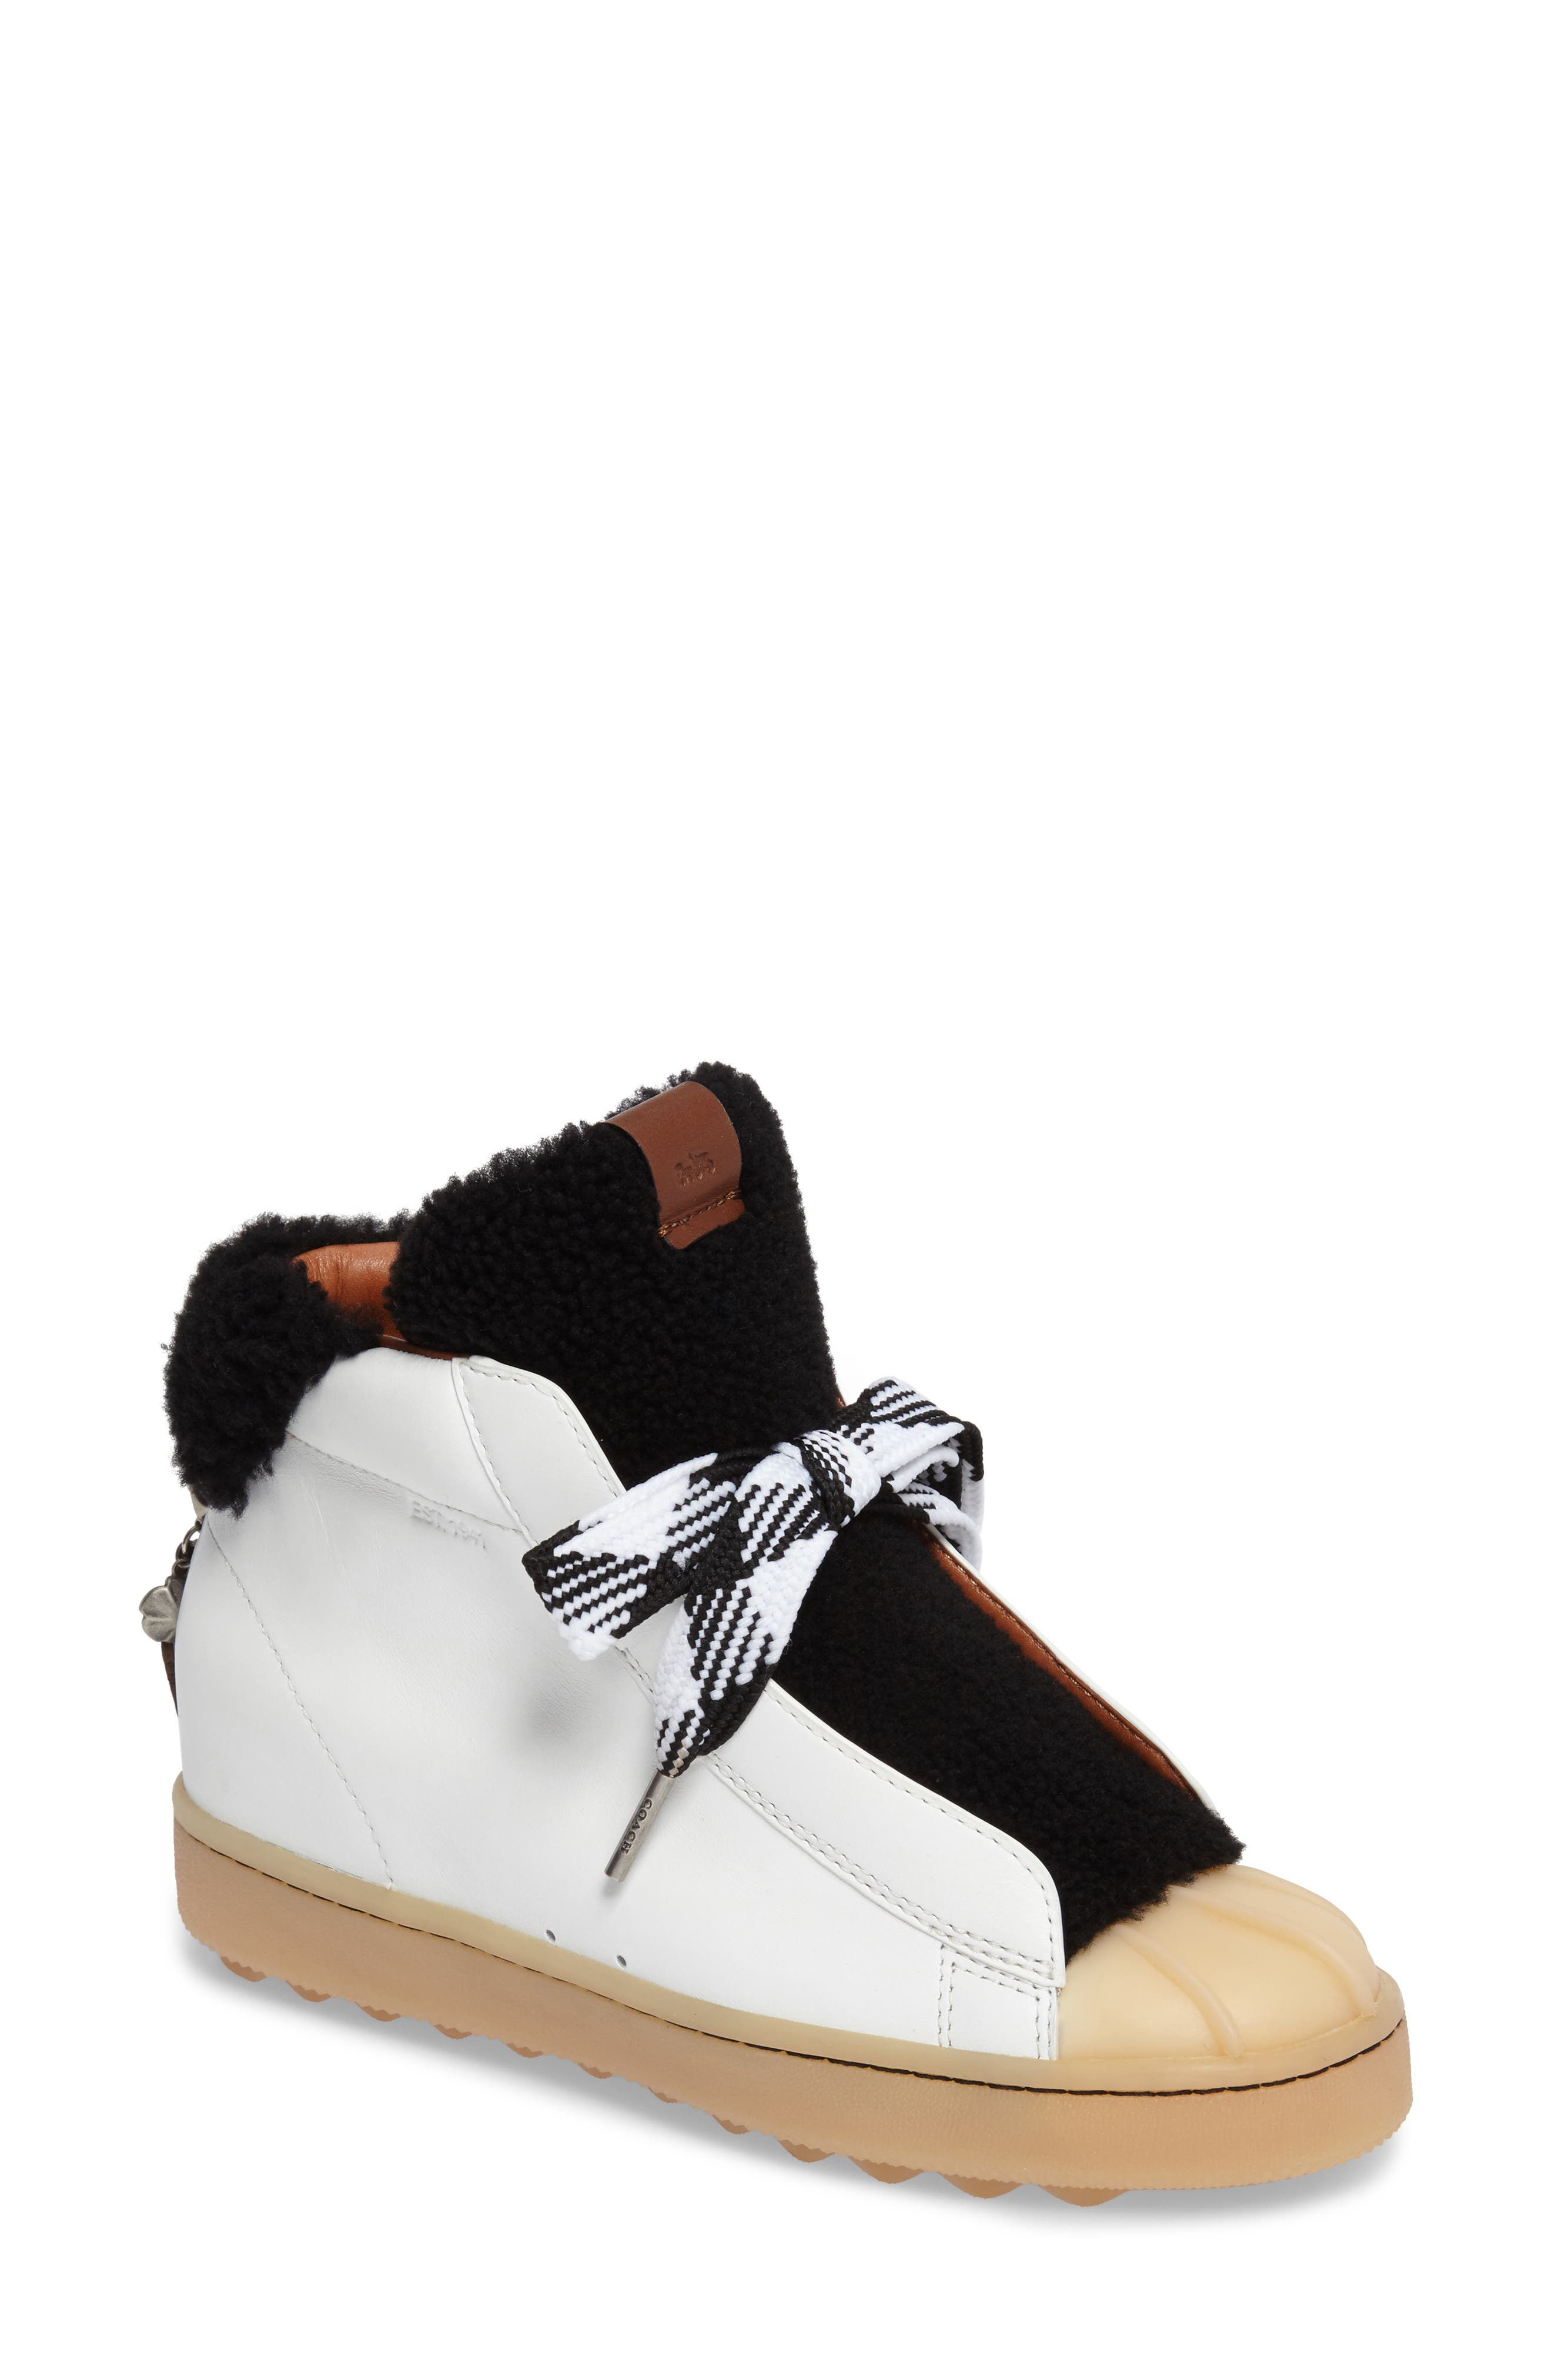 Alternate Image 1 Selected - COACH Genuine Shearling High Top Sneaker (Women)